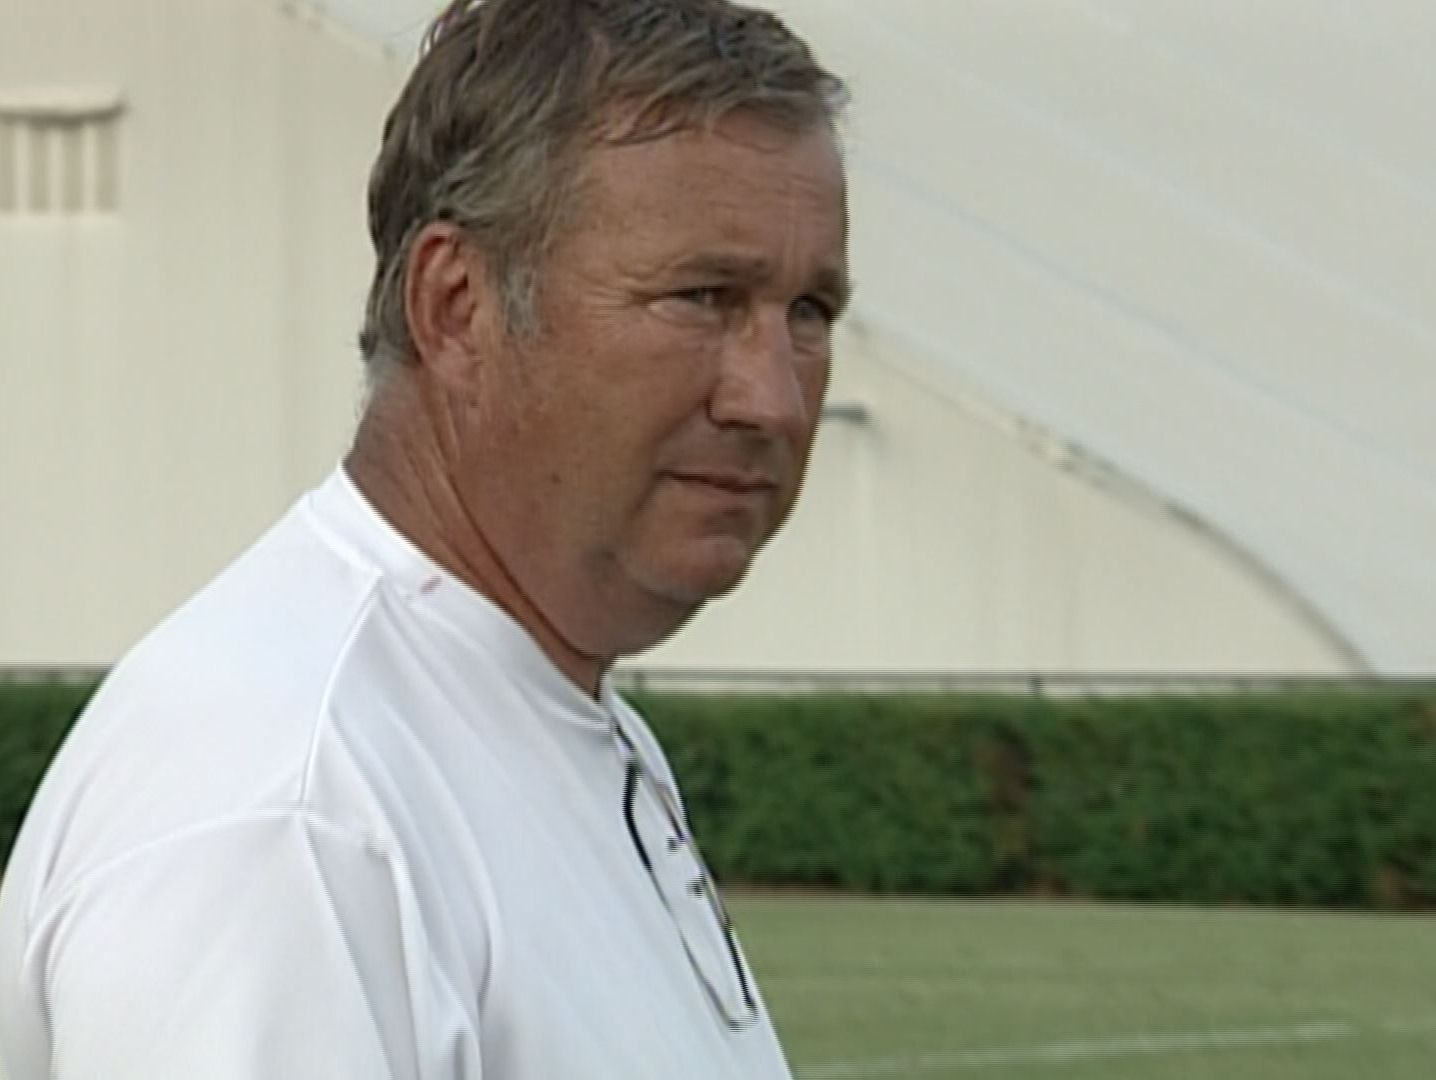 Longtime Central High School football coach, Joel Helton, passed away July 4th, 2015.